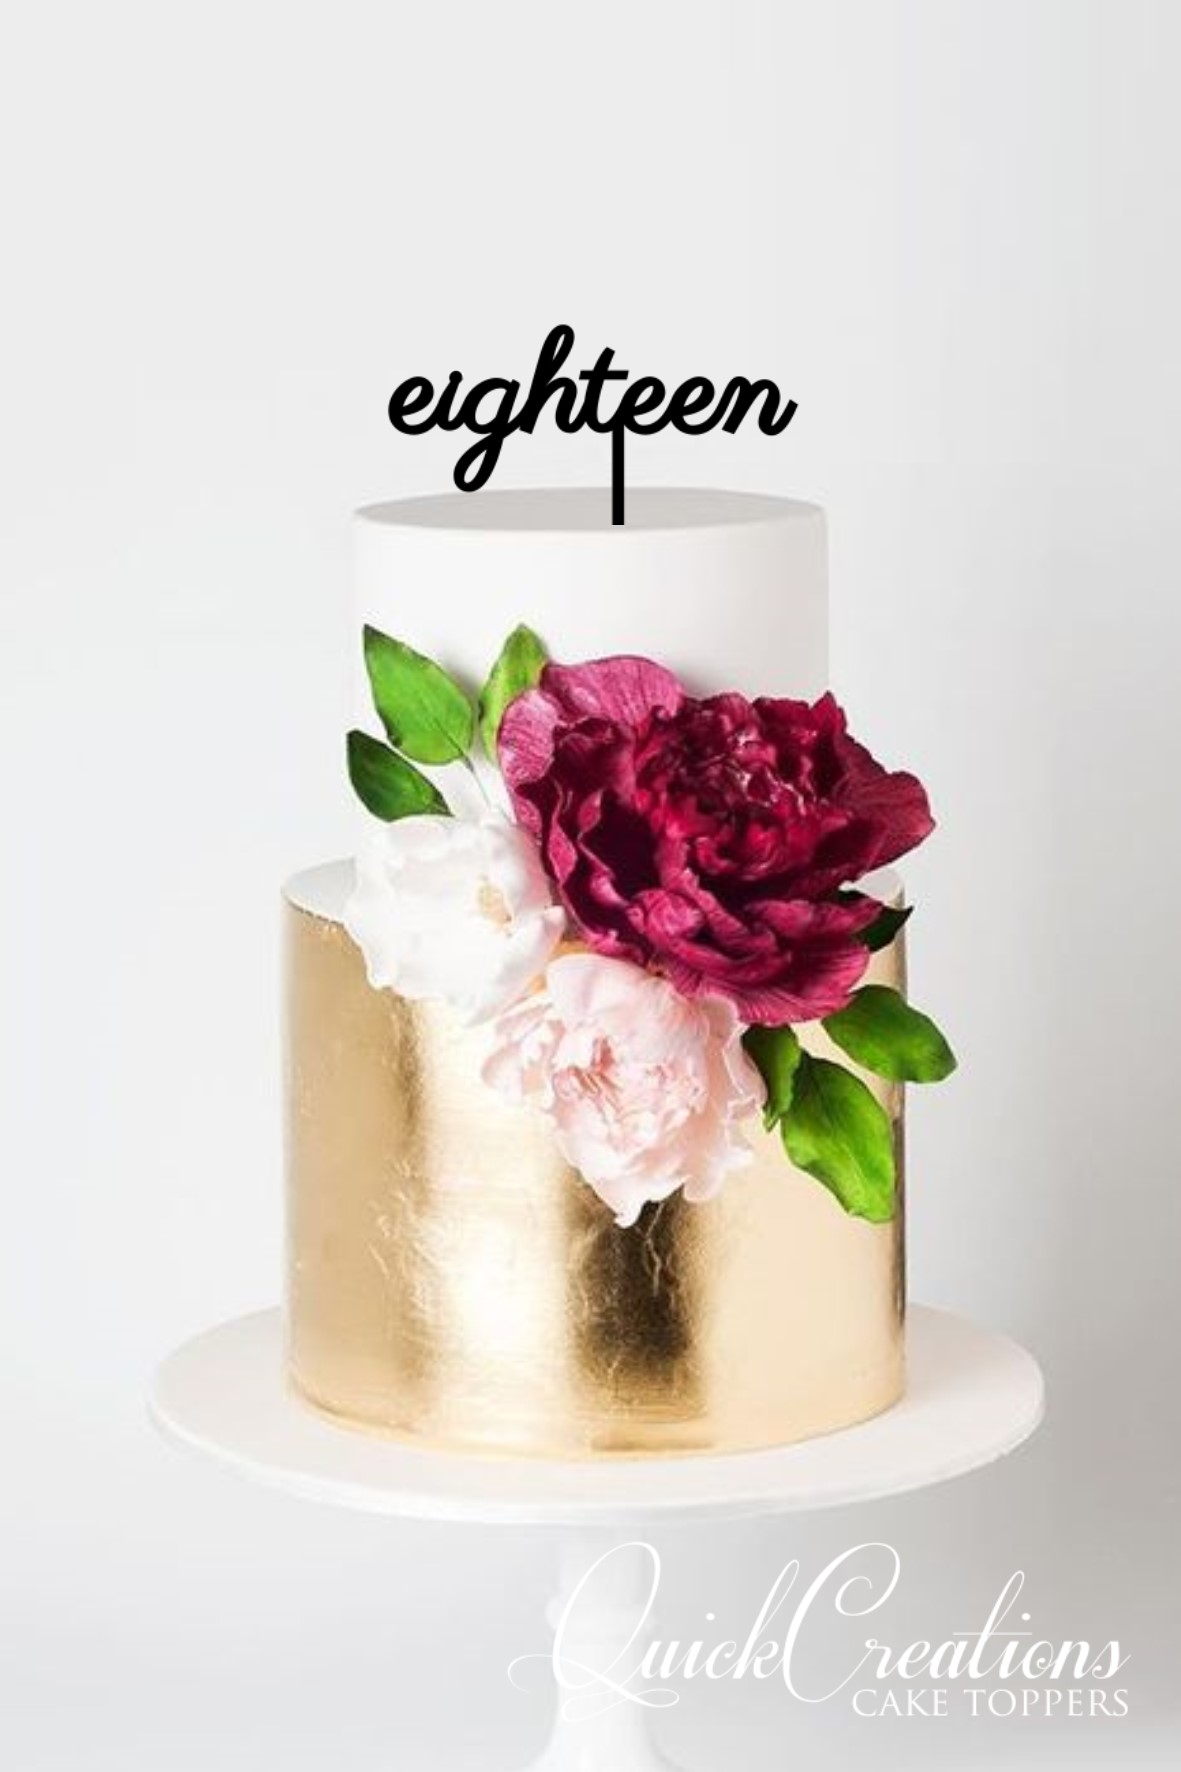 Quick Creations Cake Topper - eighteen v5